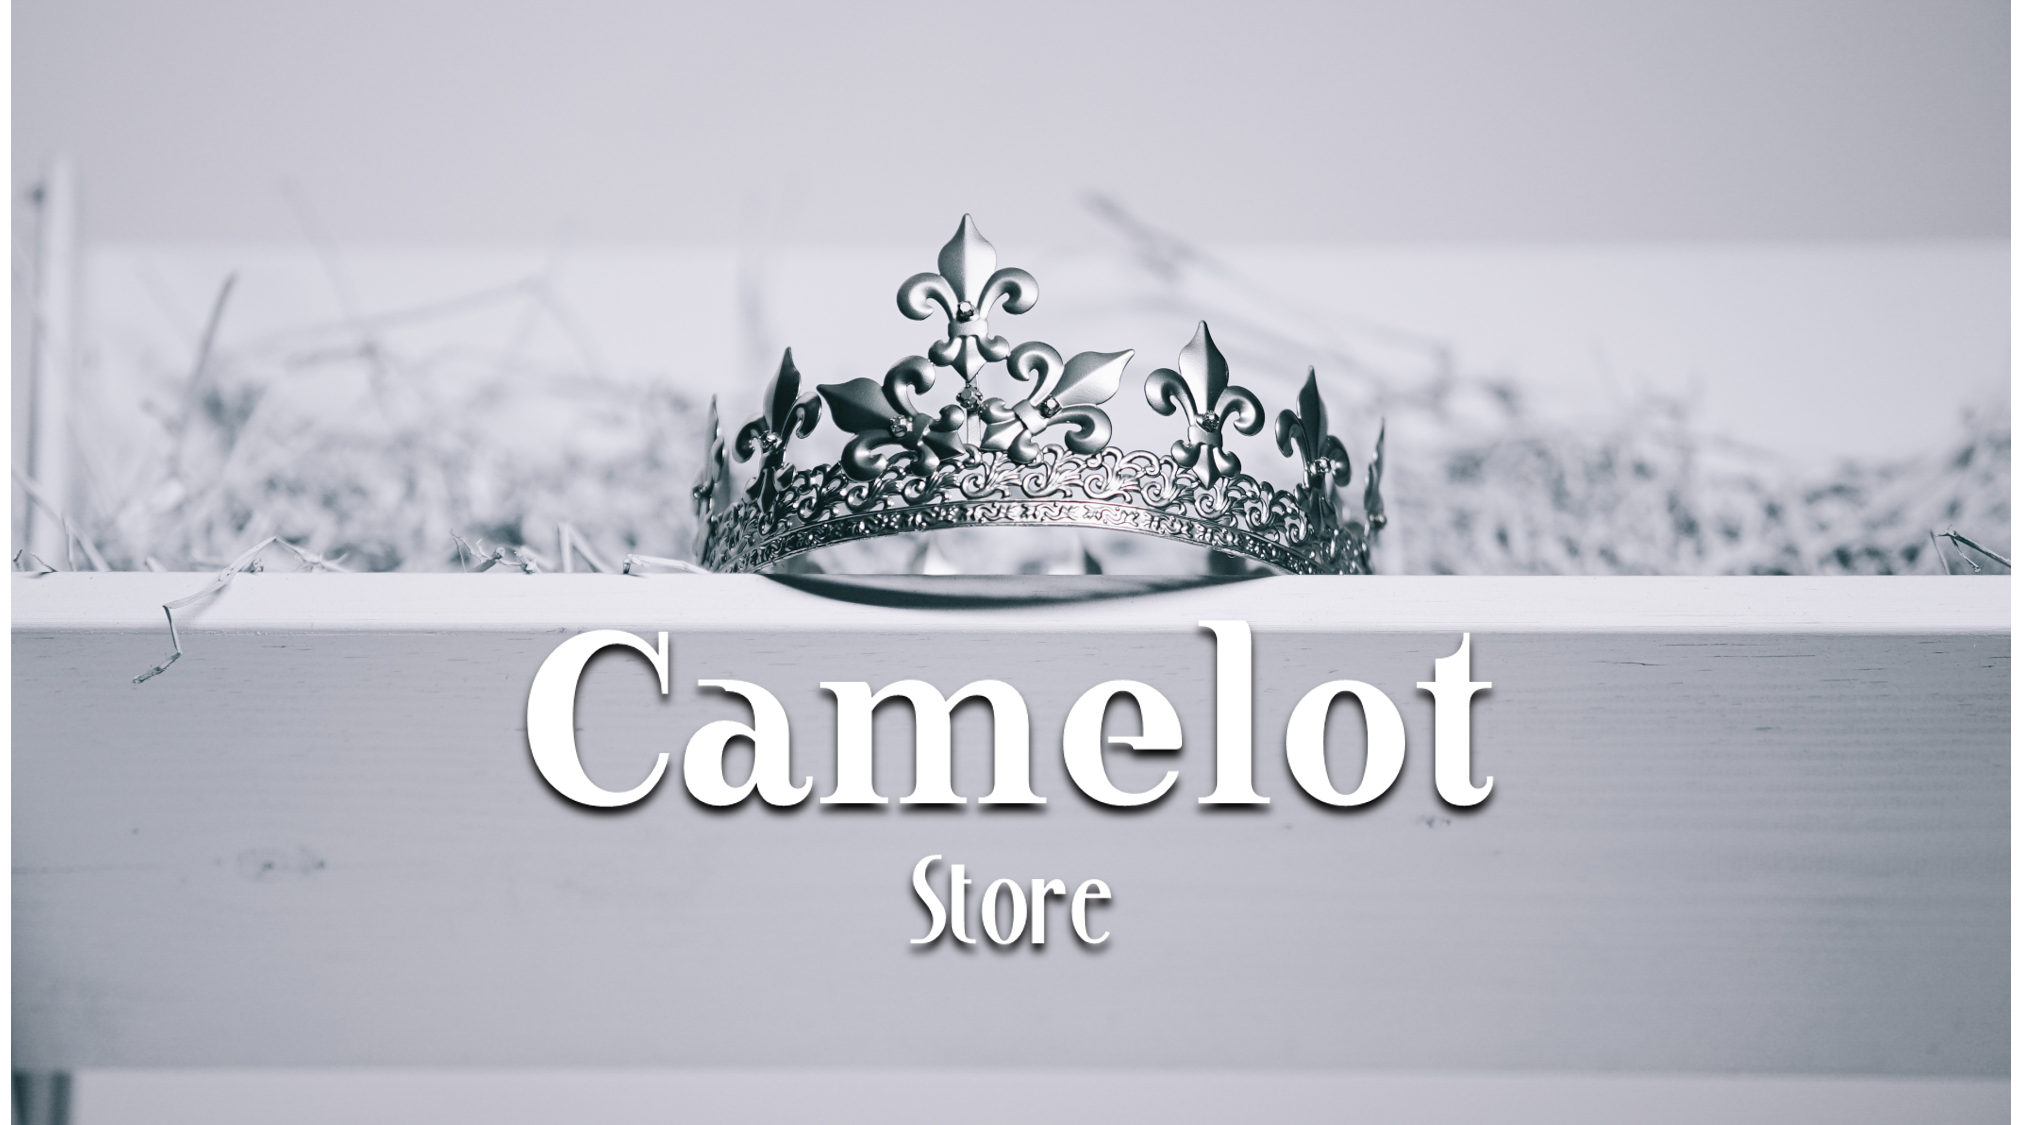 CamelotStore